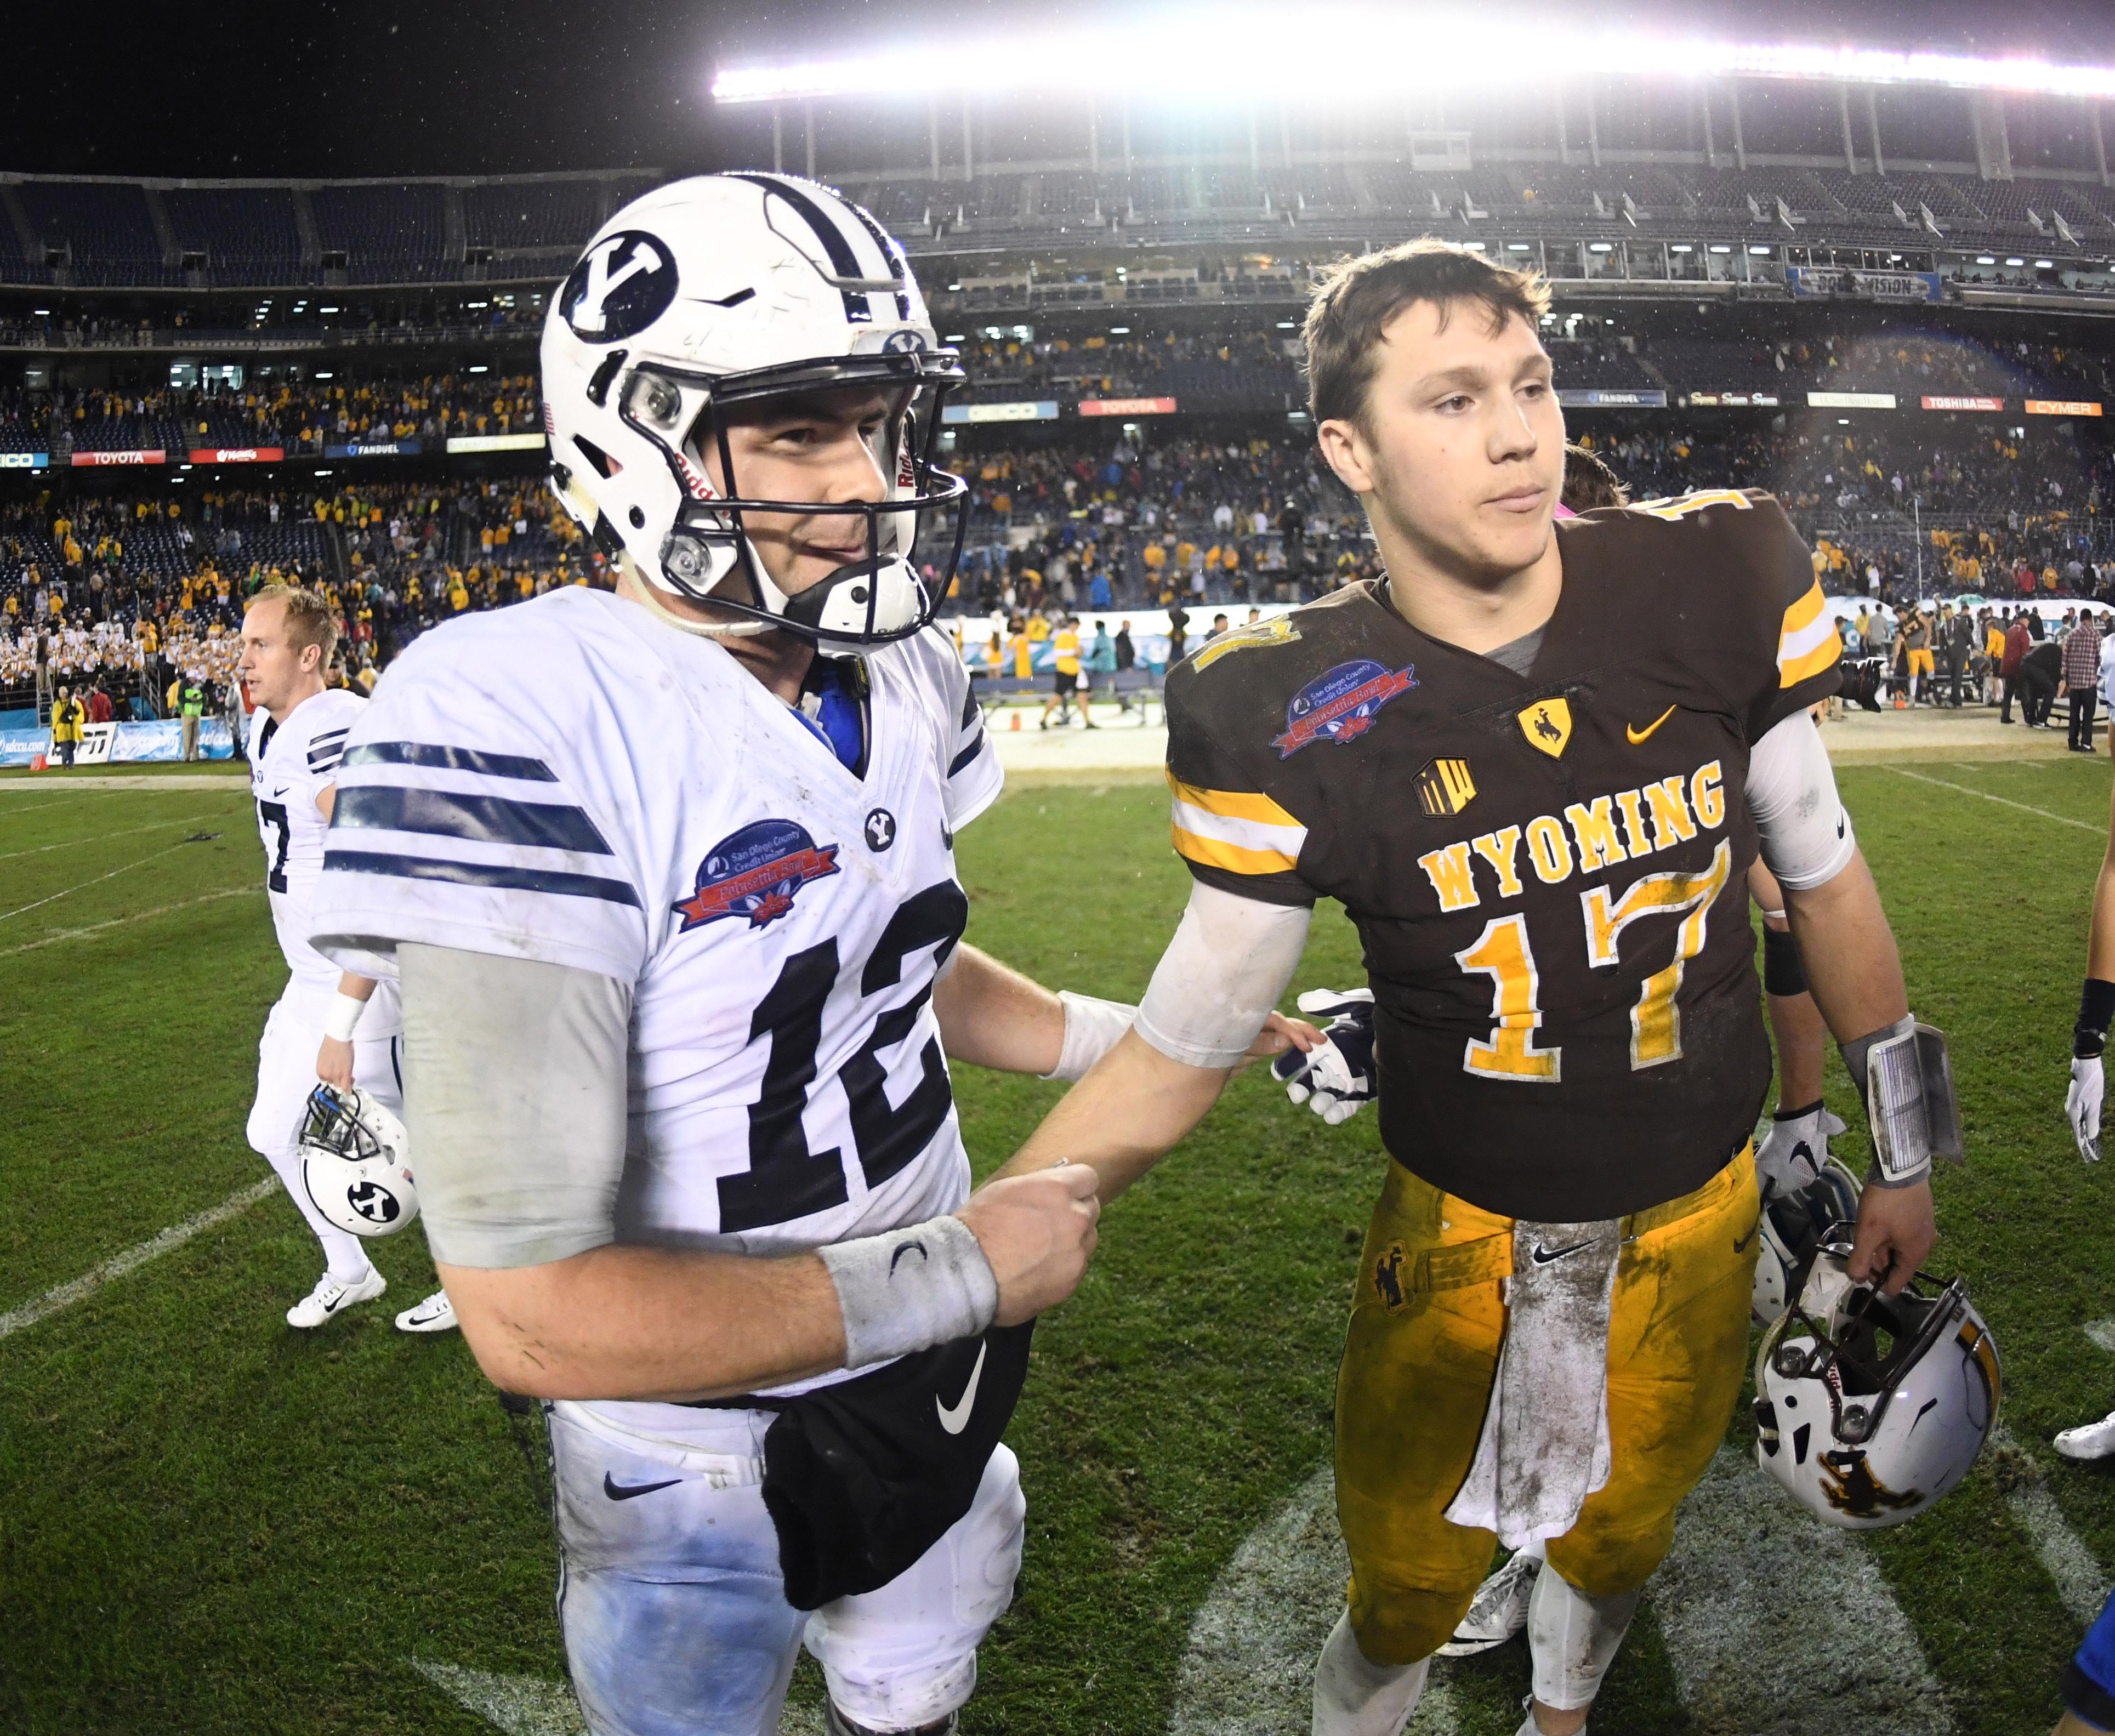 Wyoming Football Is Josh Allen A Sure Fire Franchise Quarterback Page 2